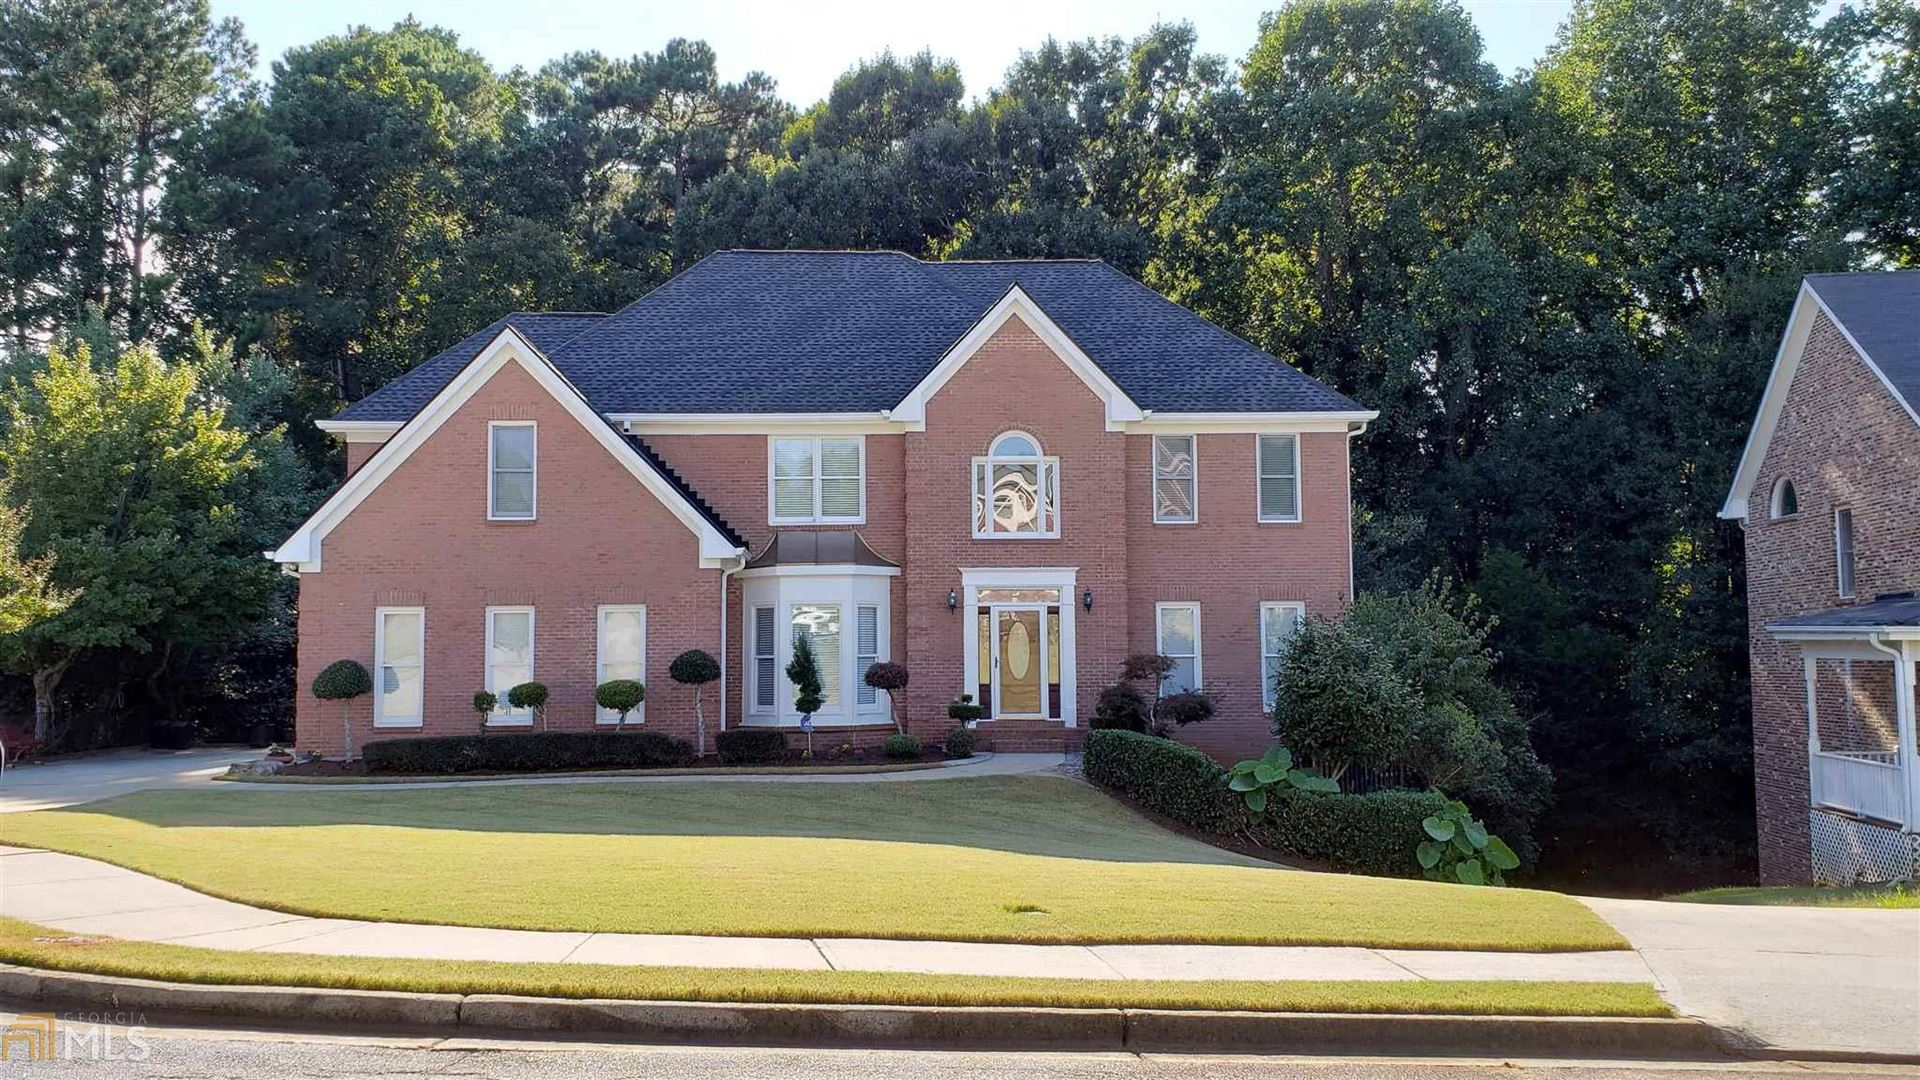 70 Cross Creek Dr, Lilburn, GA 30047 - MLS#: 8864090